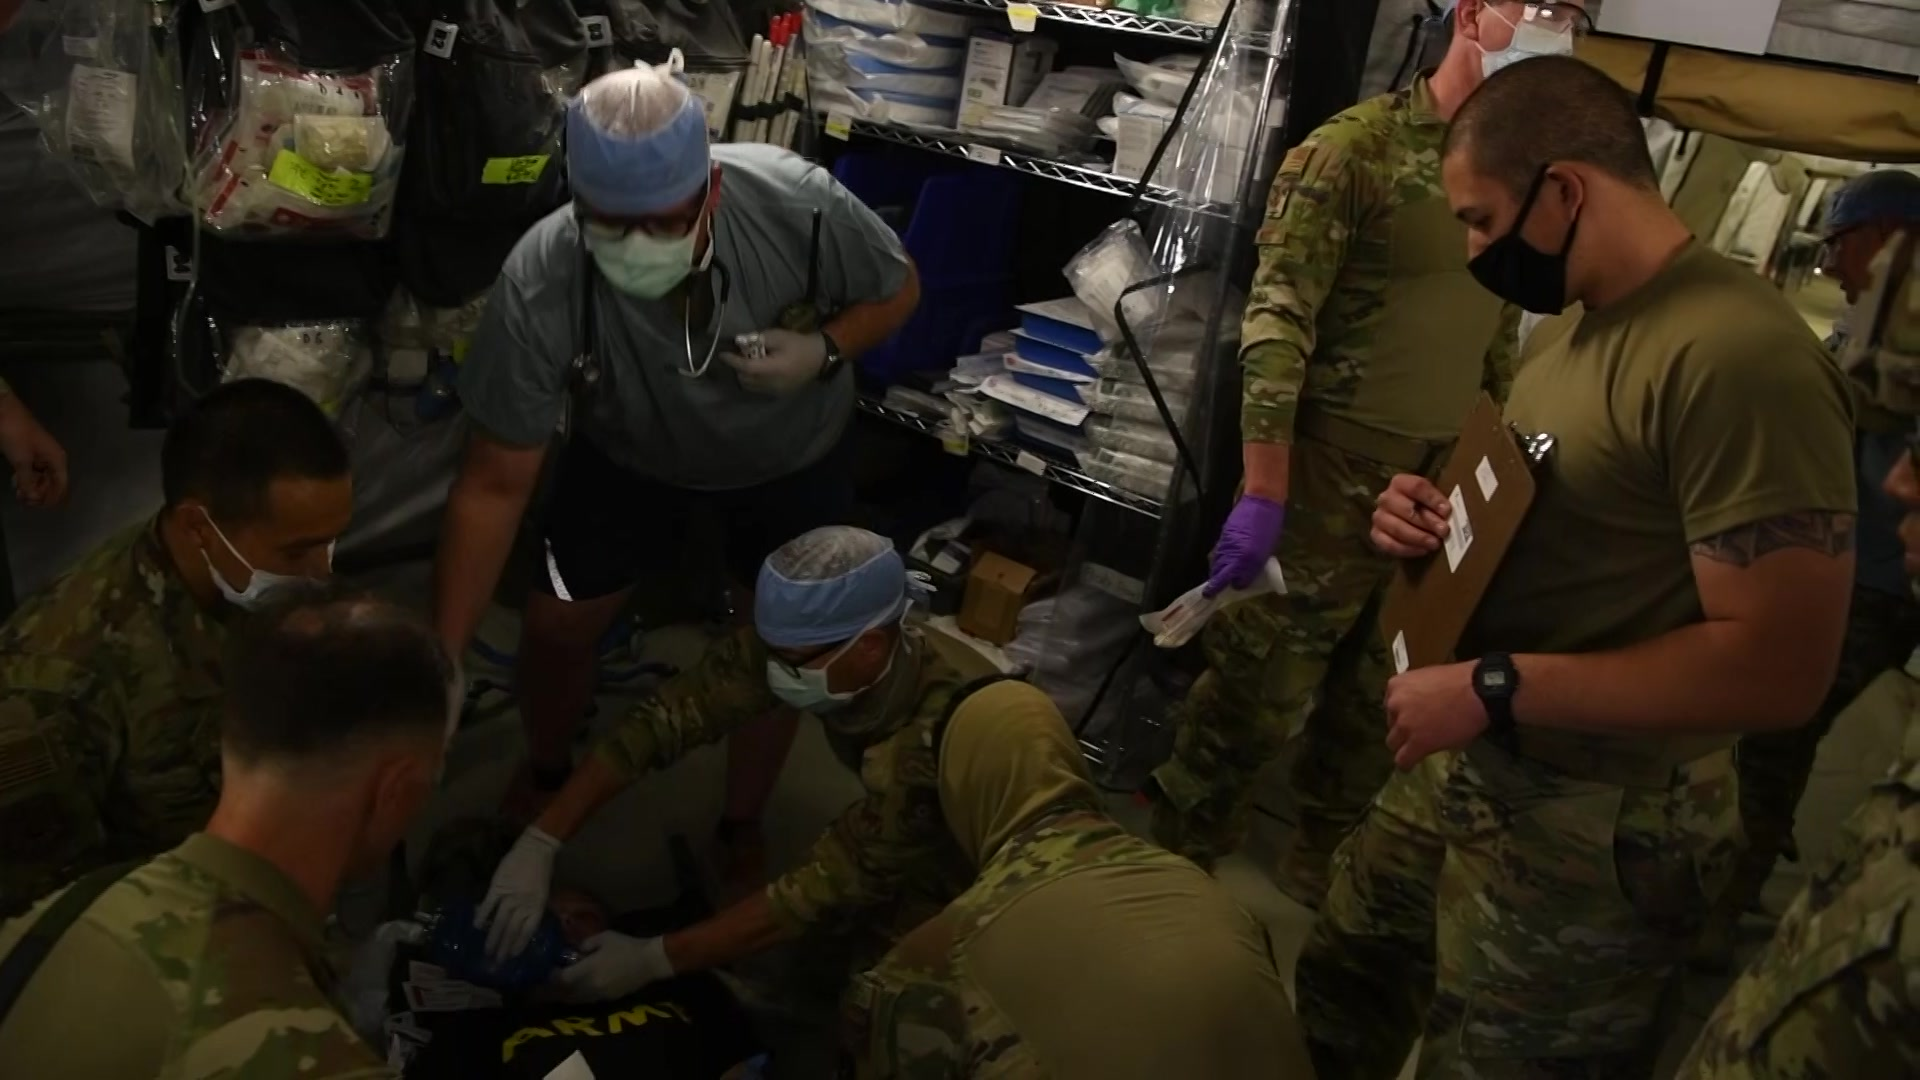 Video of a mass casualty exercise.